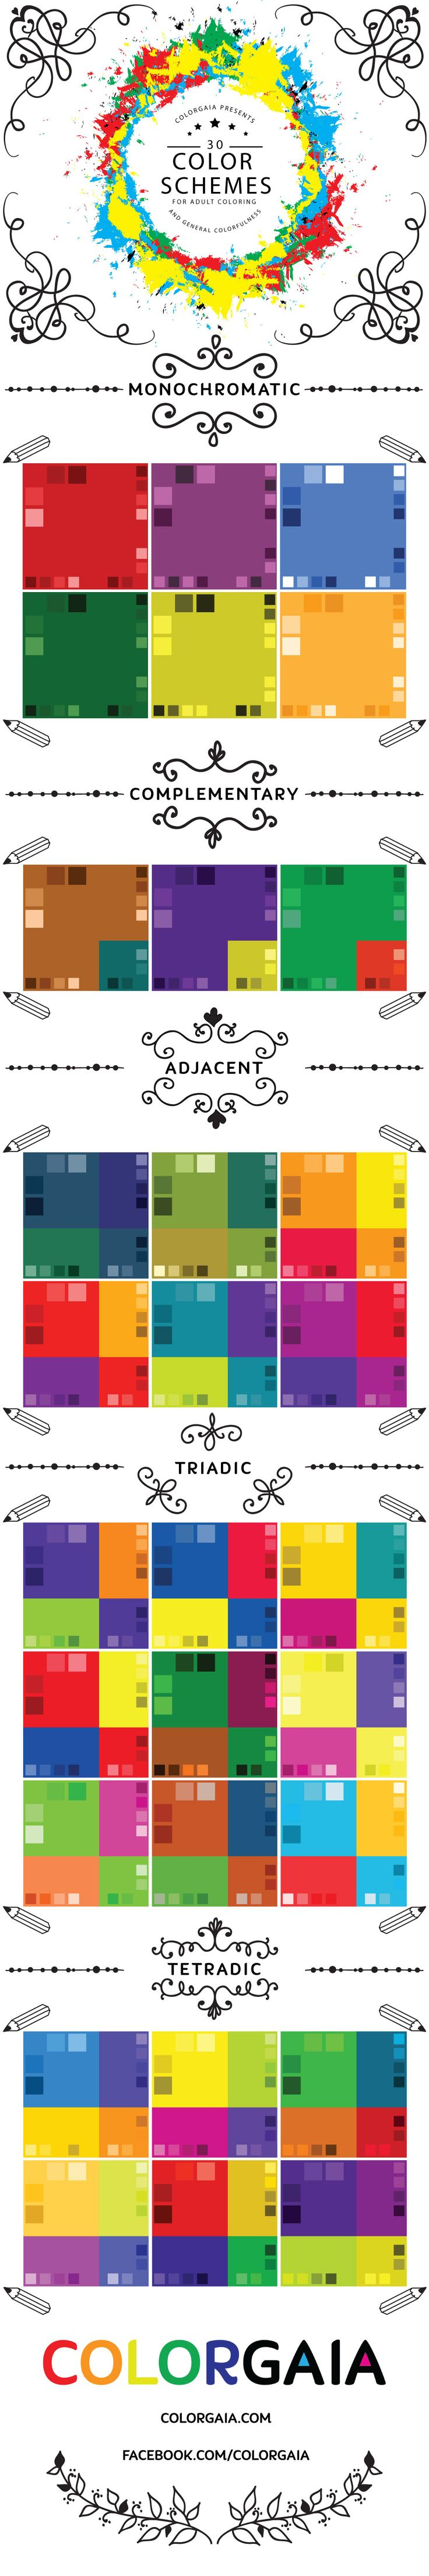 Examples Of Color Schemes 79 best color info images on pinterest | color schemes, coloring